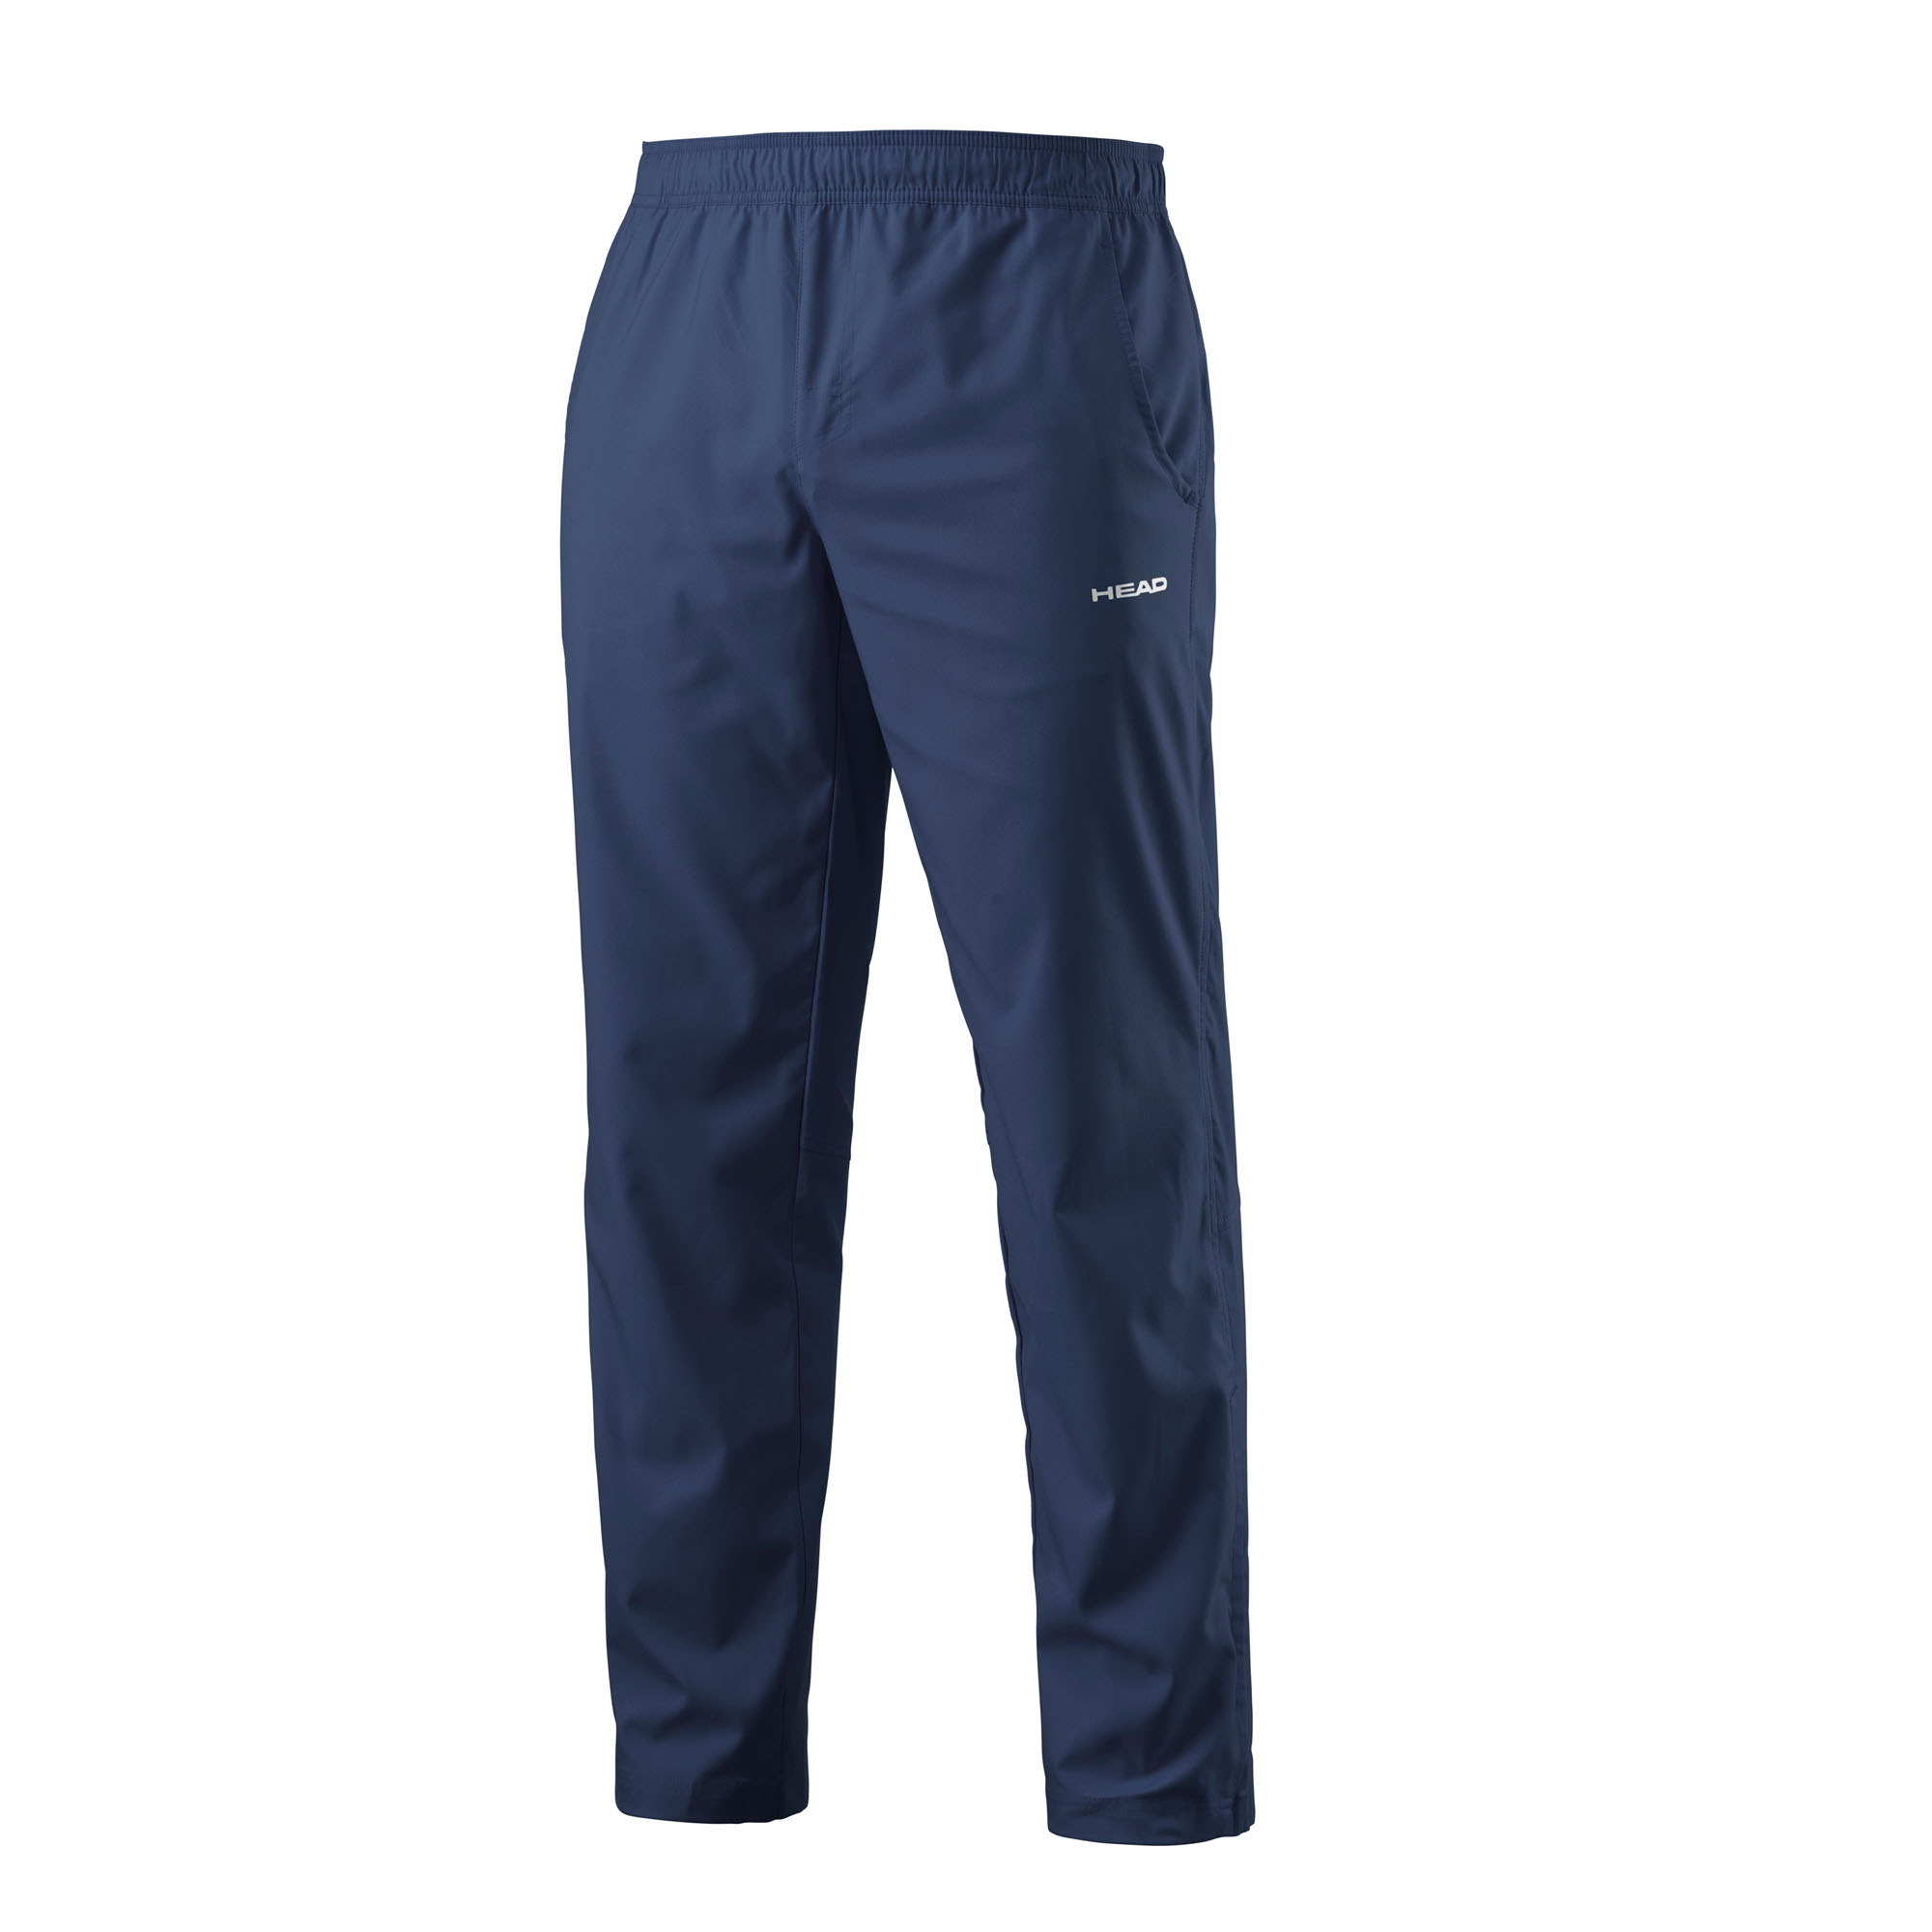 Head Club Woven Boys Pants - Navy, S